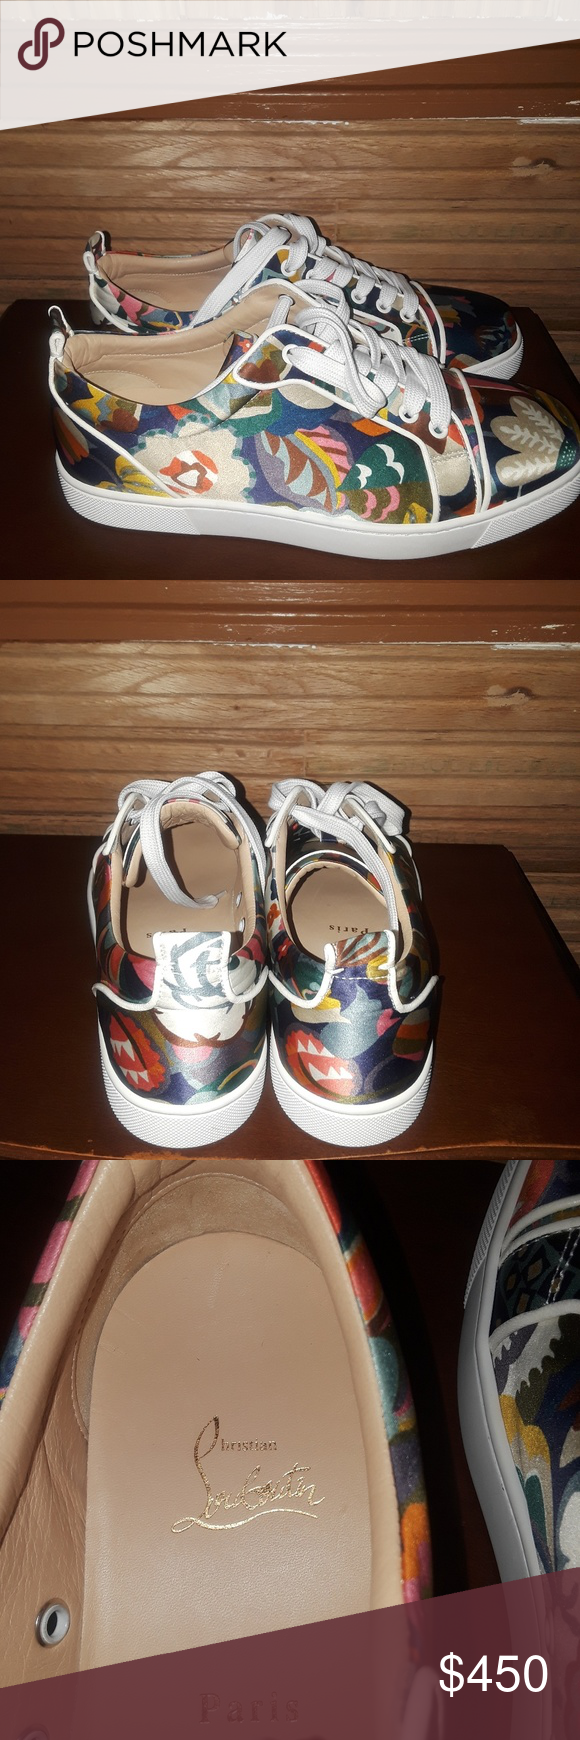 32b081f2e6aa Christian Louboutin Sneakers Fabric foral design upper